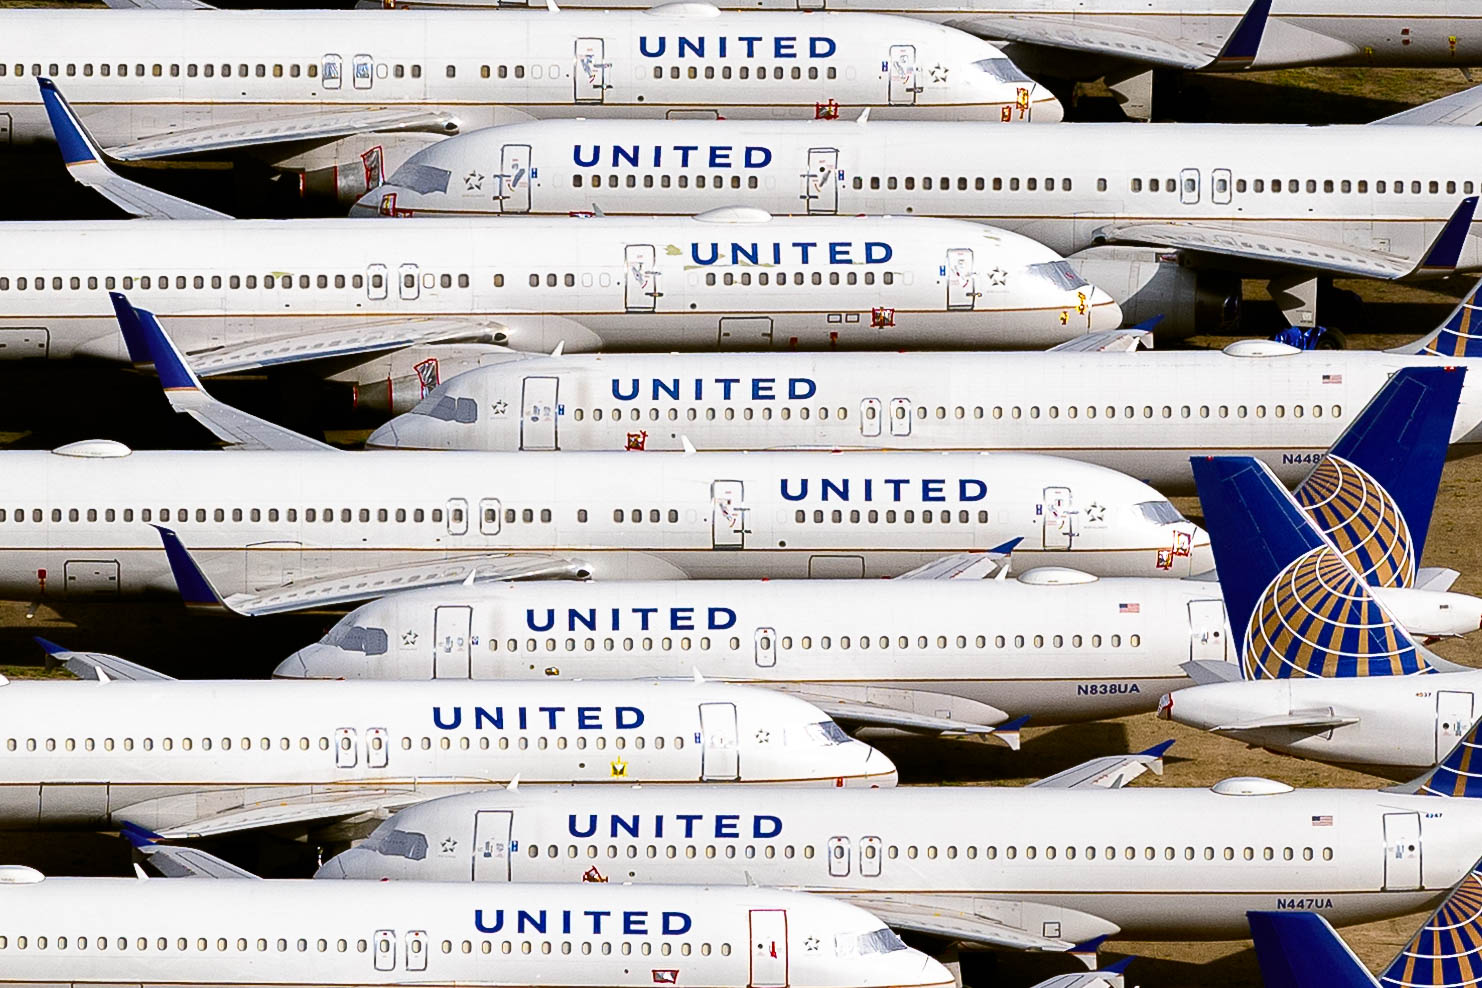 United Airlines fleet of A319 and B737 stored at Roswell, New Mexico (May 2020)